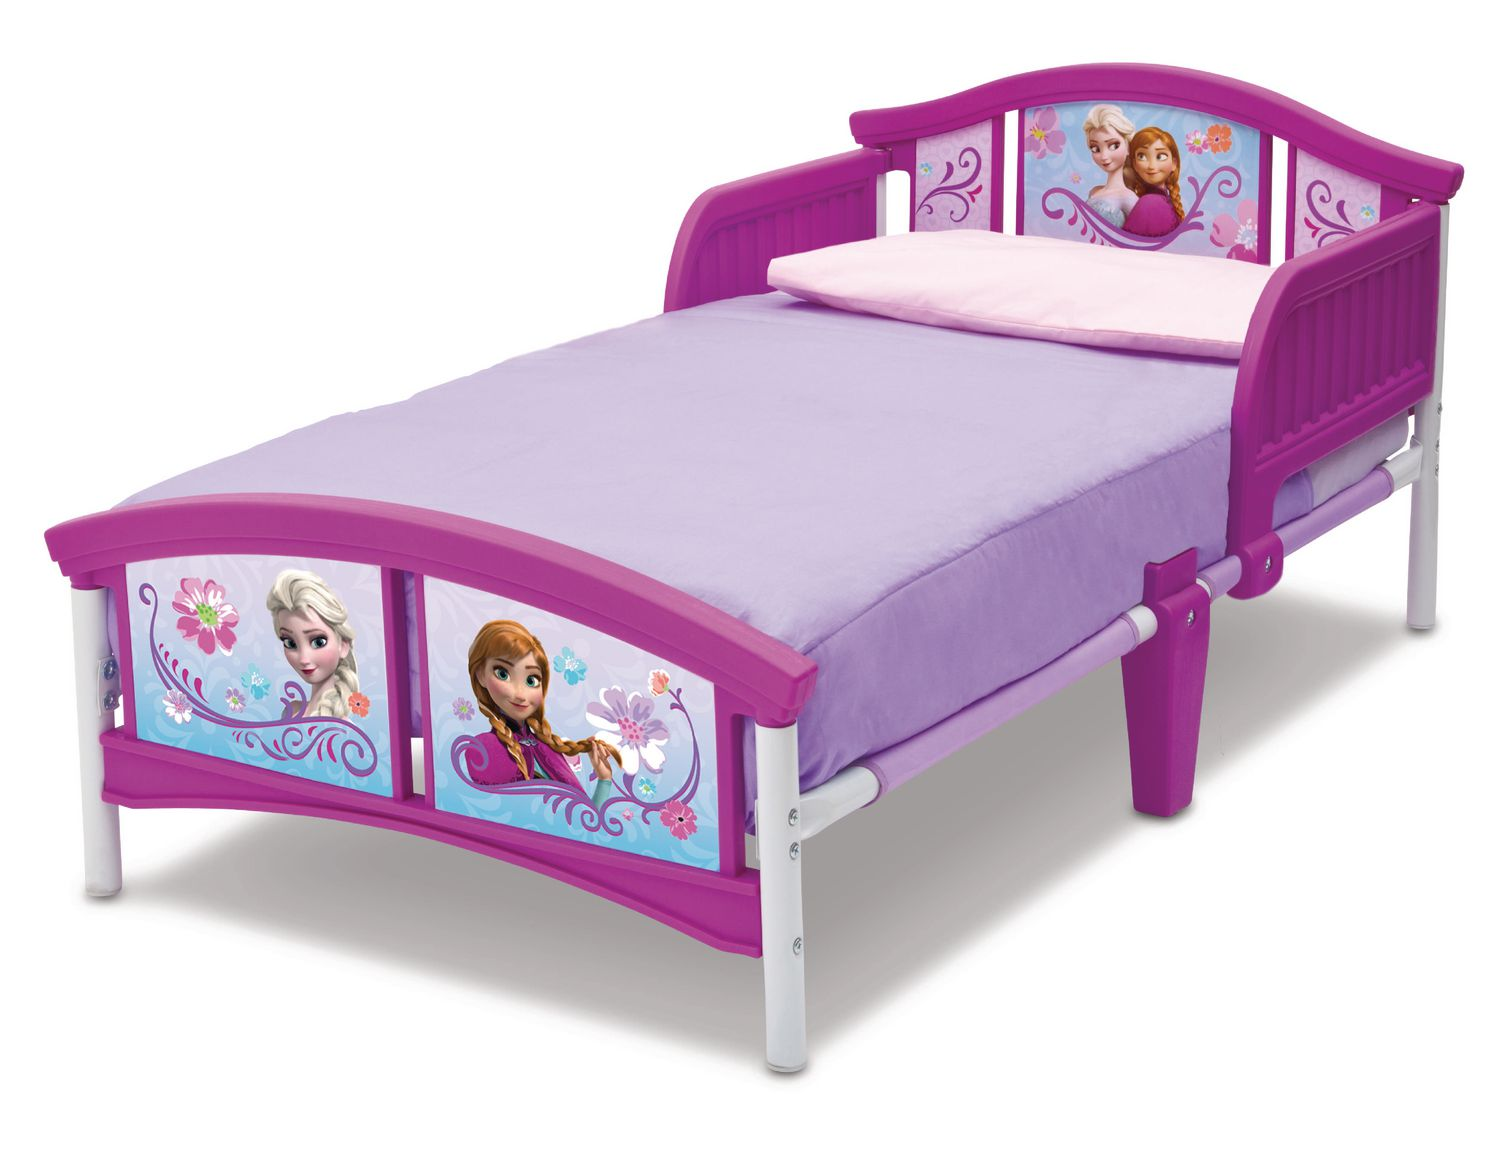 Disney Frozen Toddler Bed. Buy Kids Beds Online   Walmart Canada